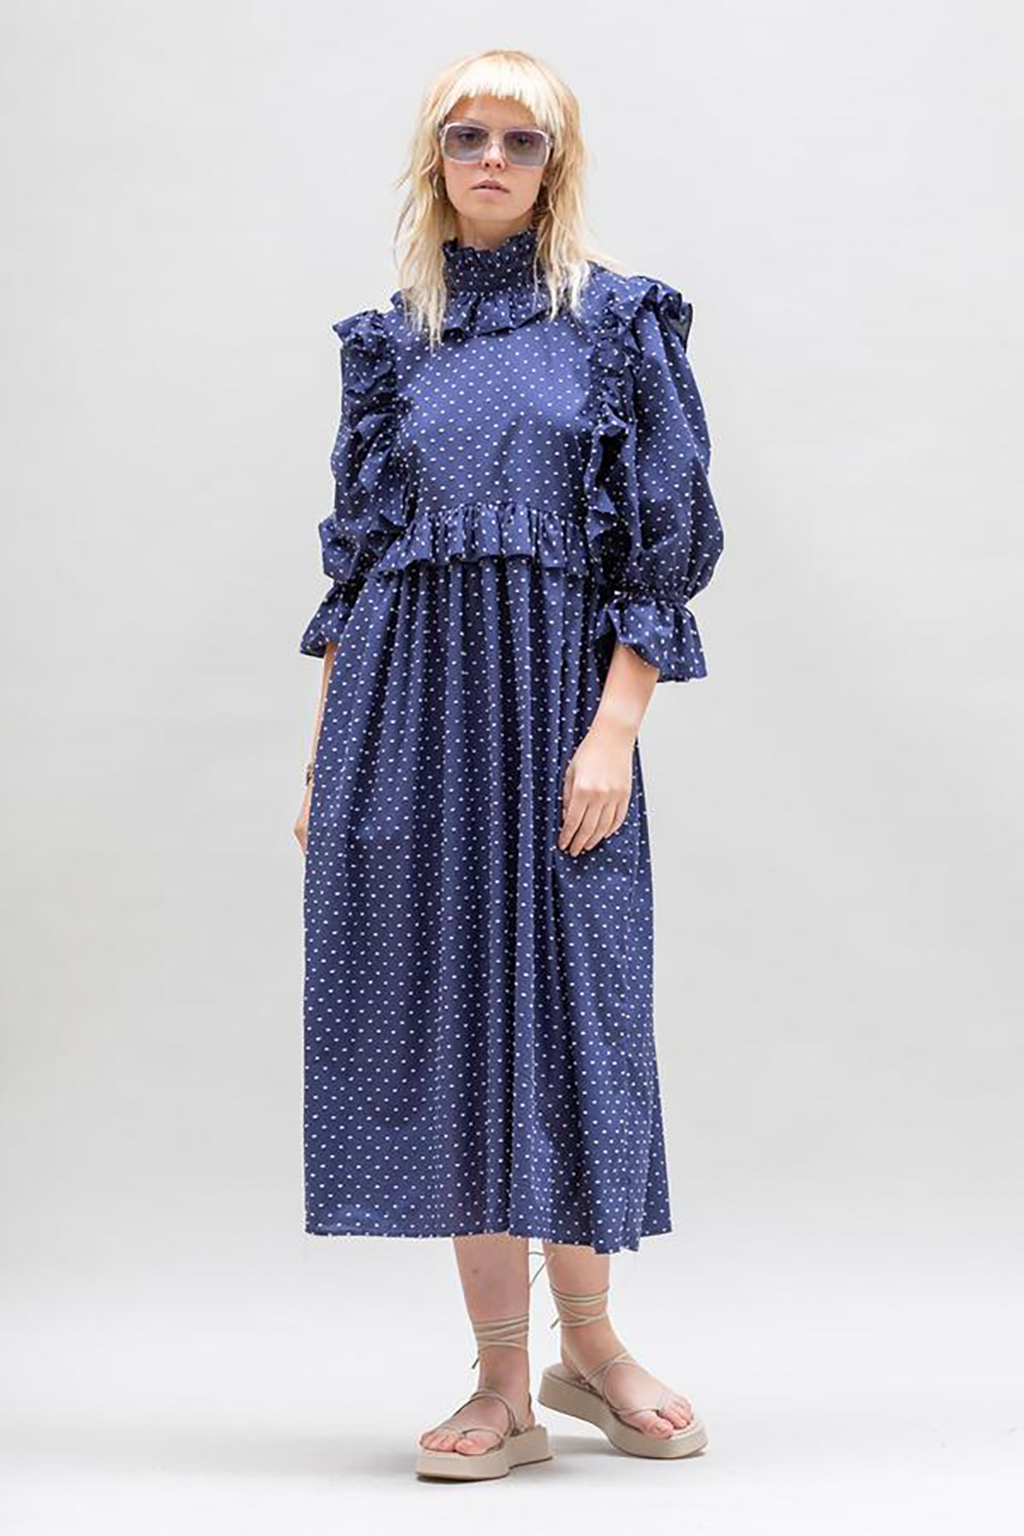 Ruffle Crazed Dress, Navy and White